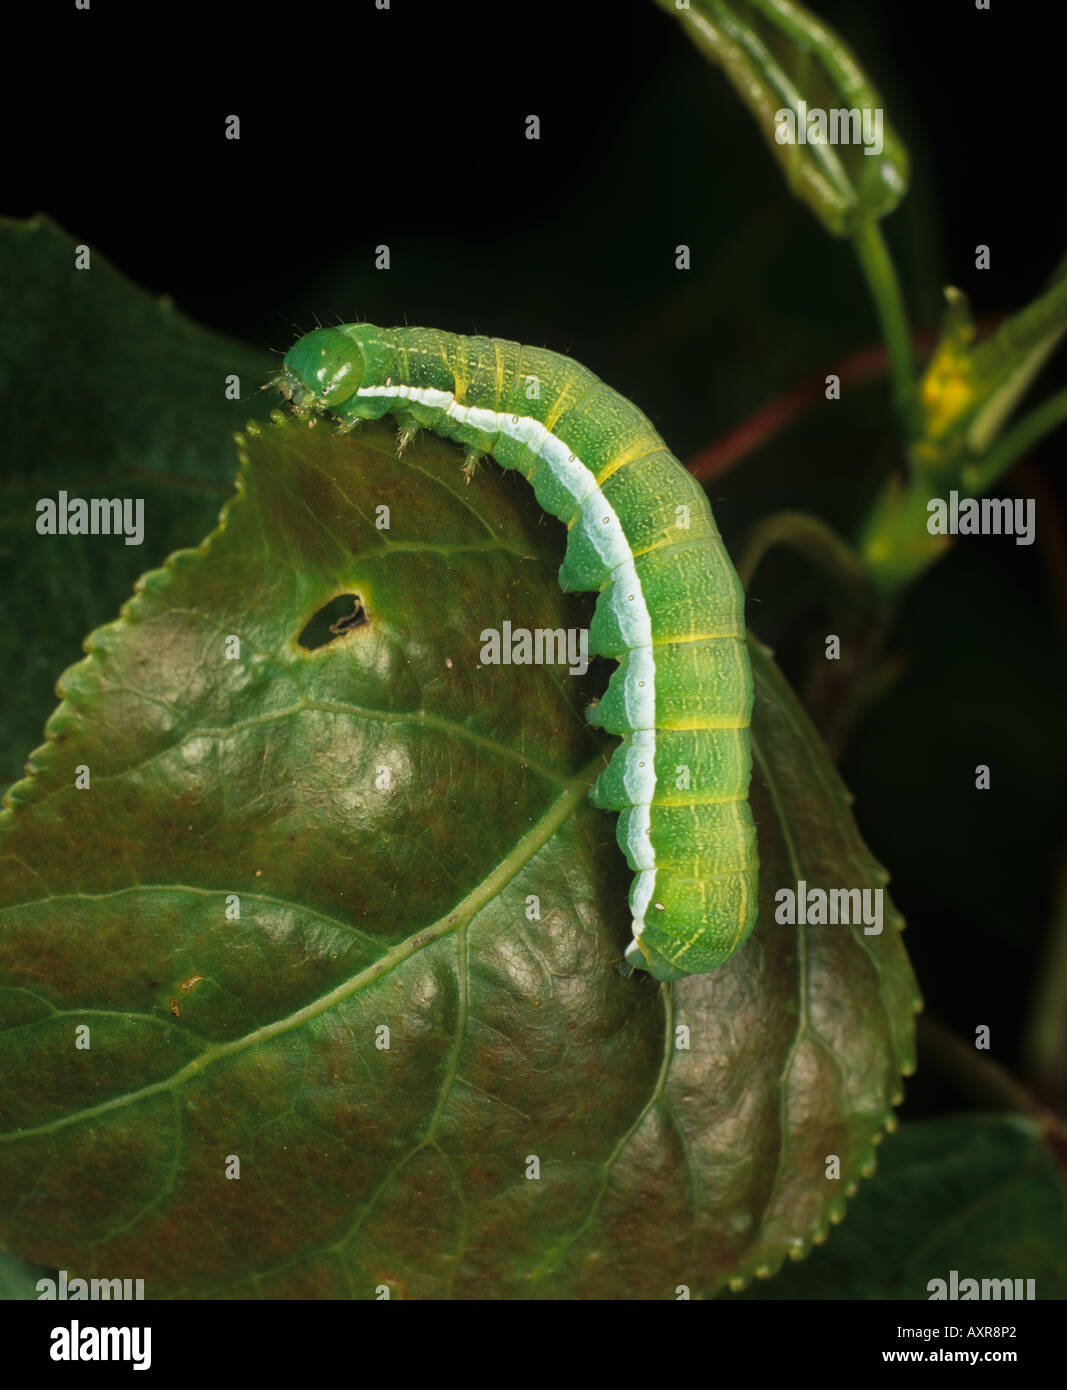 Hebrew character moth Orthosia gothica caterpillar on a leaf - Stock Image